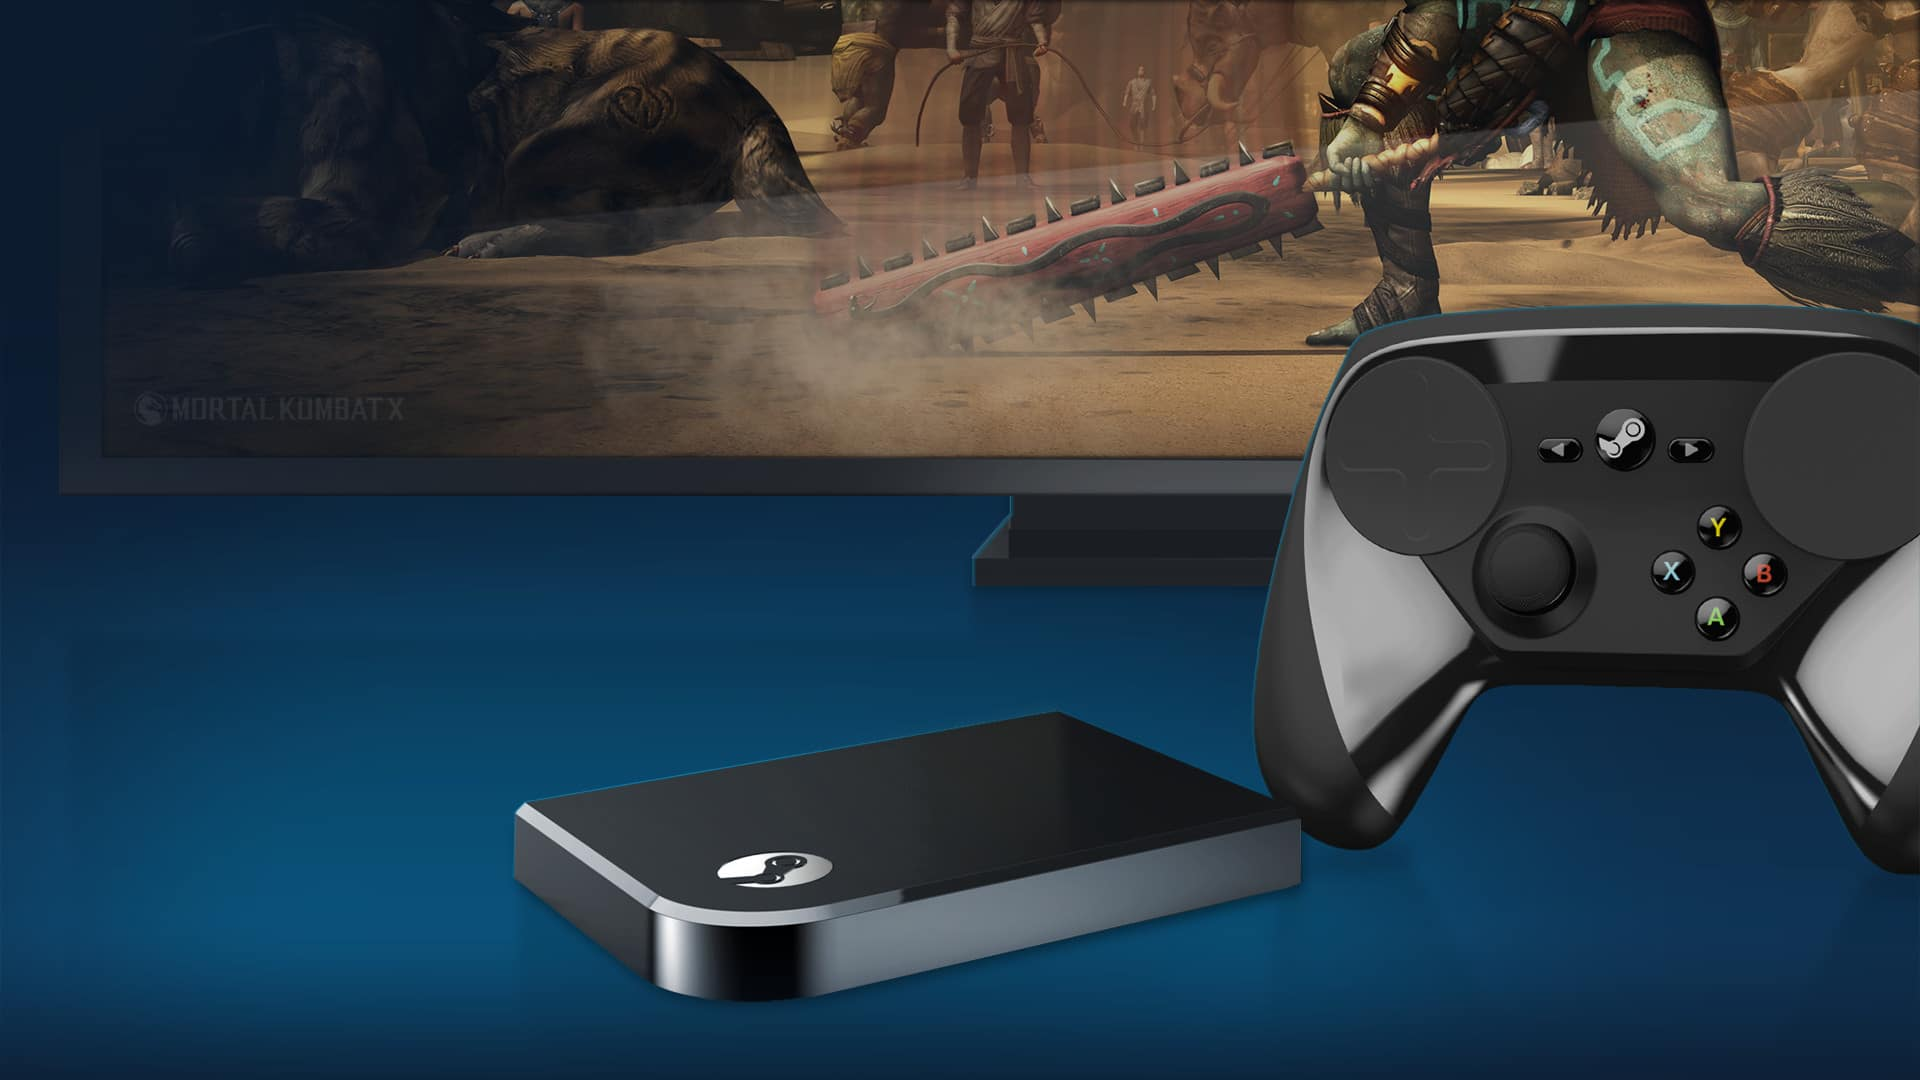 Steam Link $2.50 and Steam Link W/ Controller $34.19 + Shipping